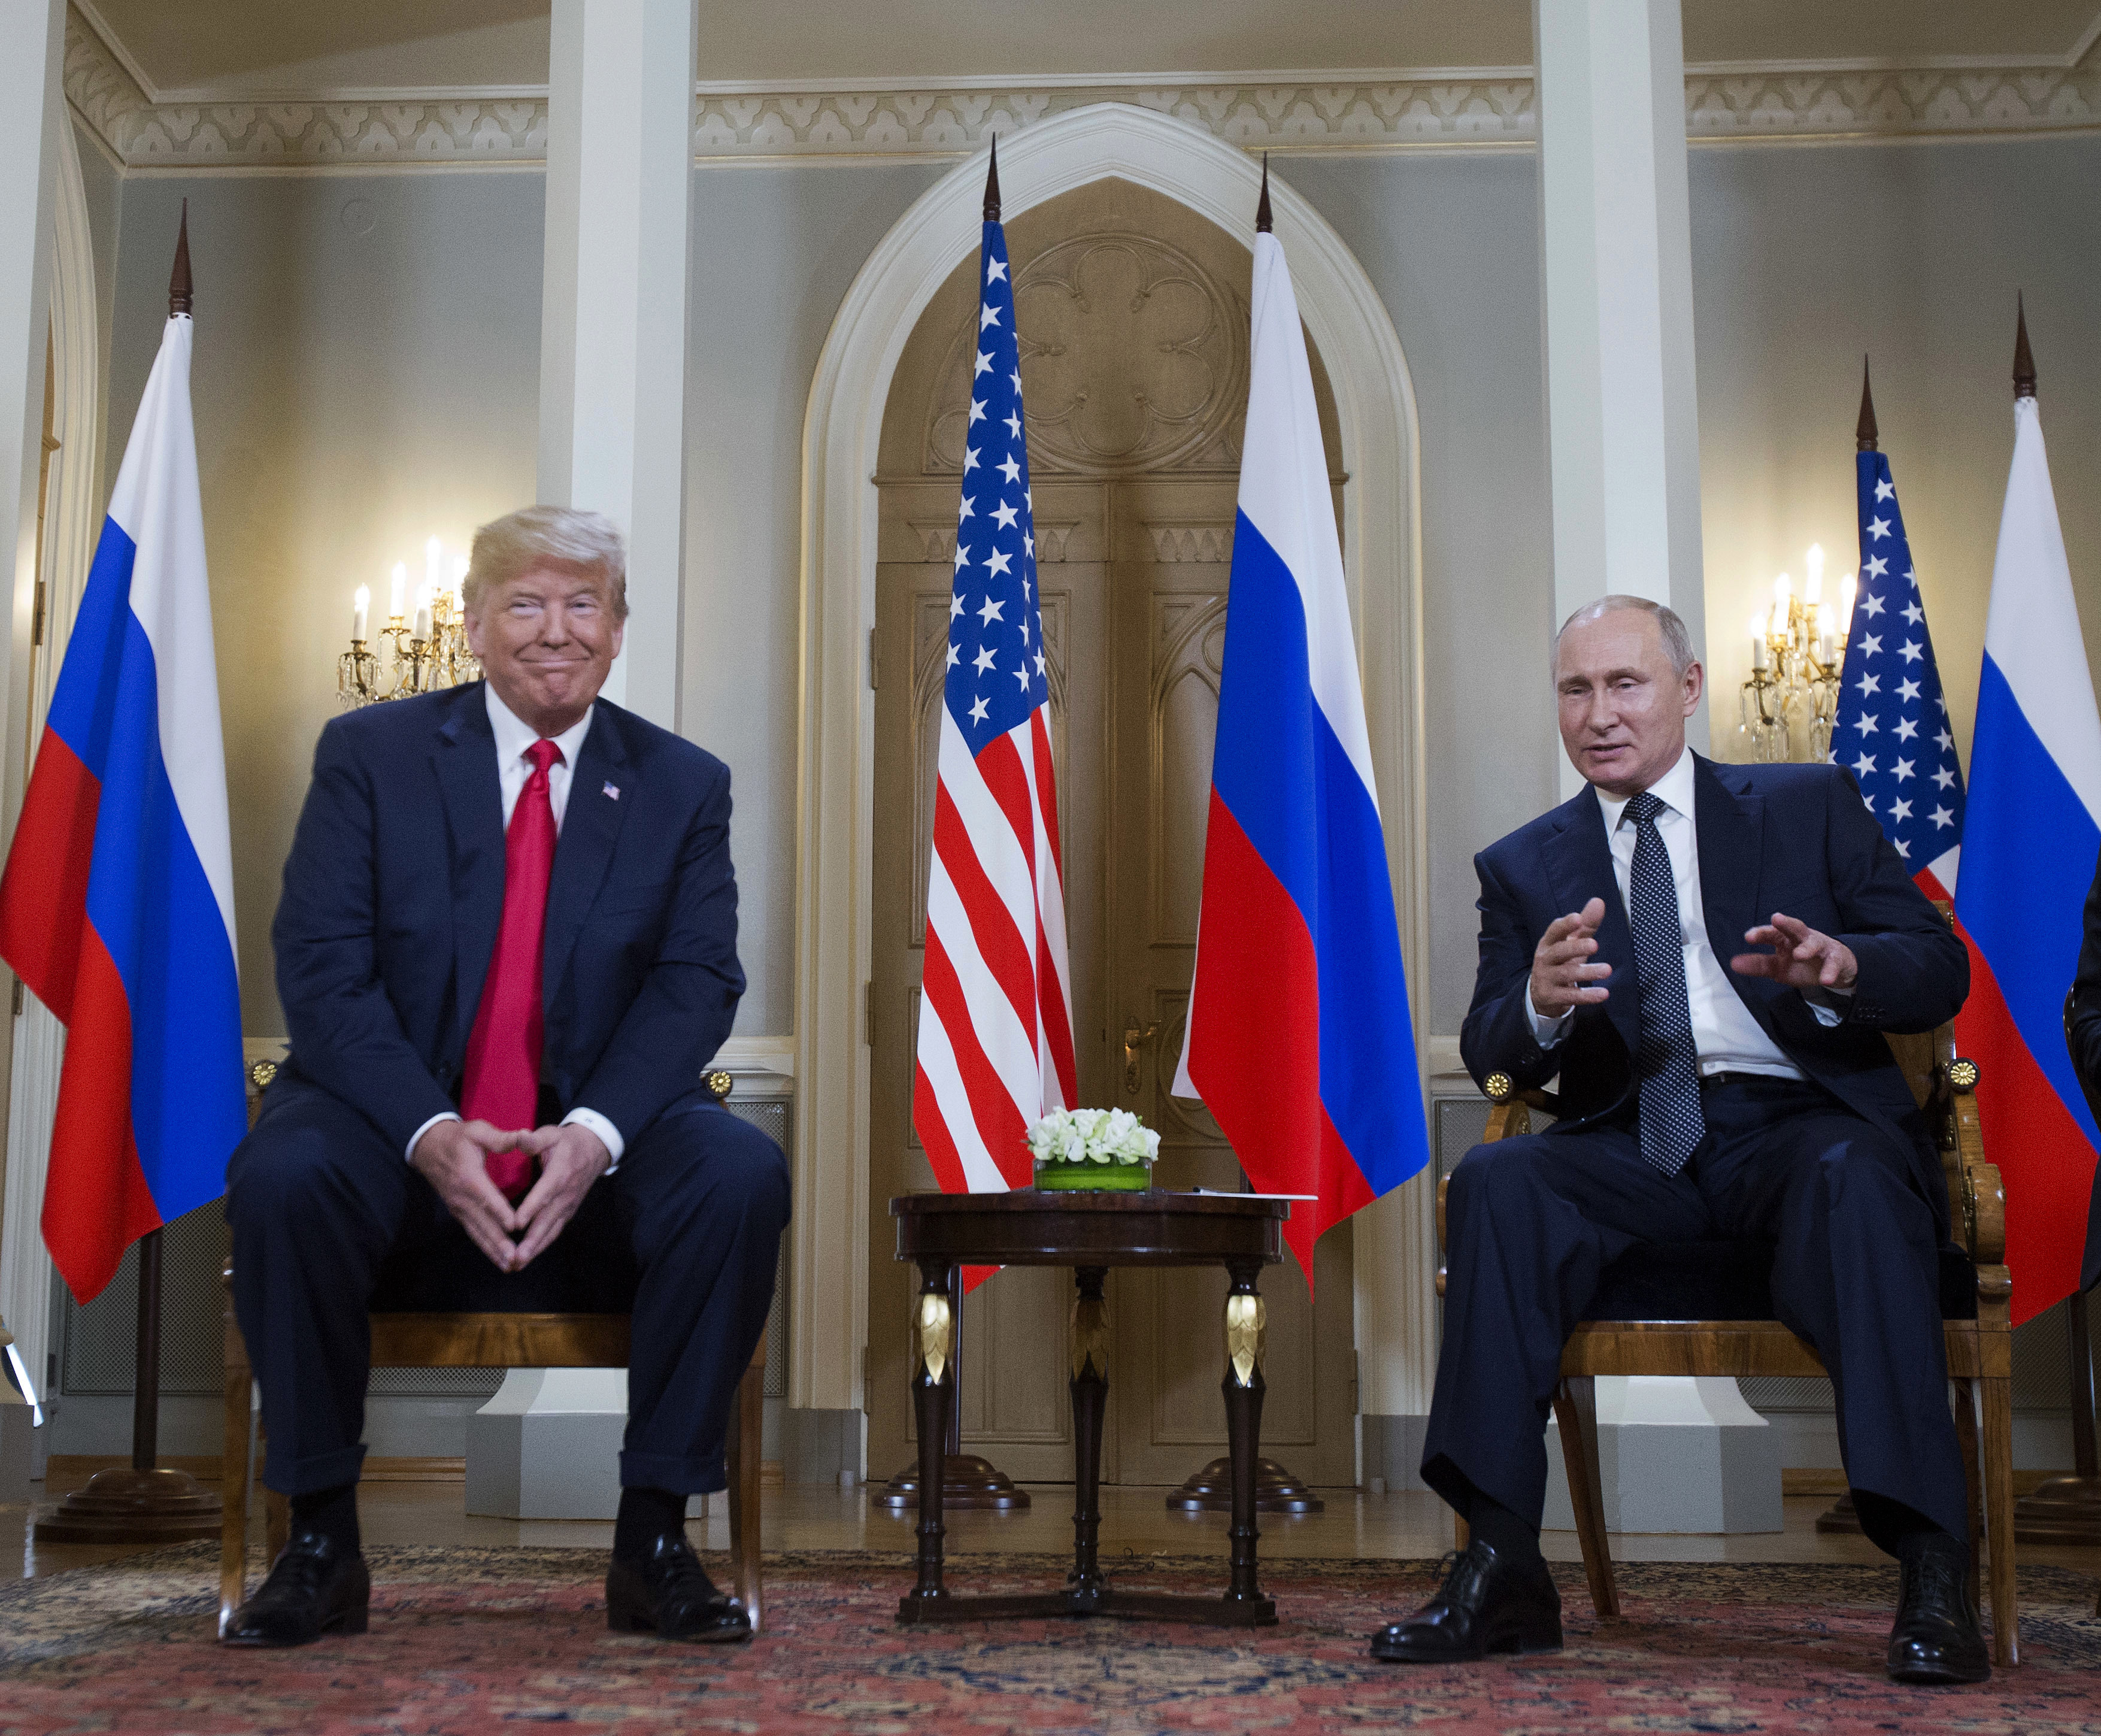 Trump Had 5 Clear Chances To Condemn Putin He Declined